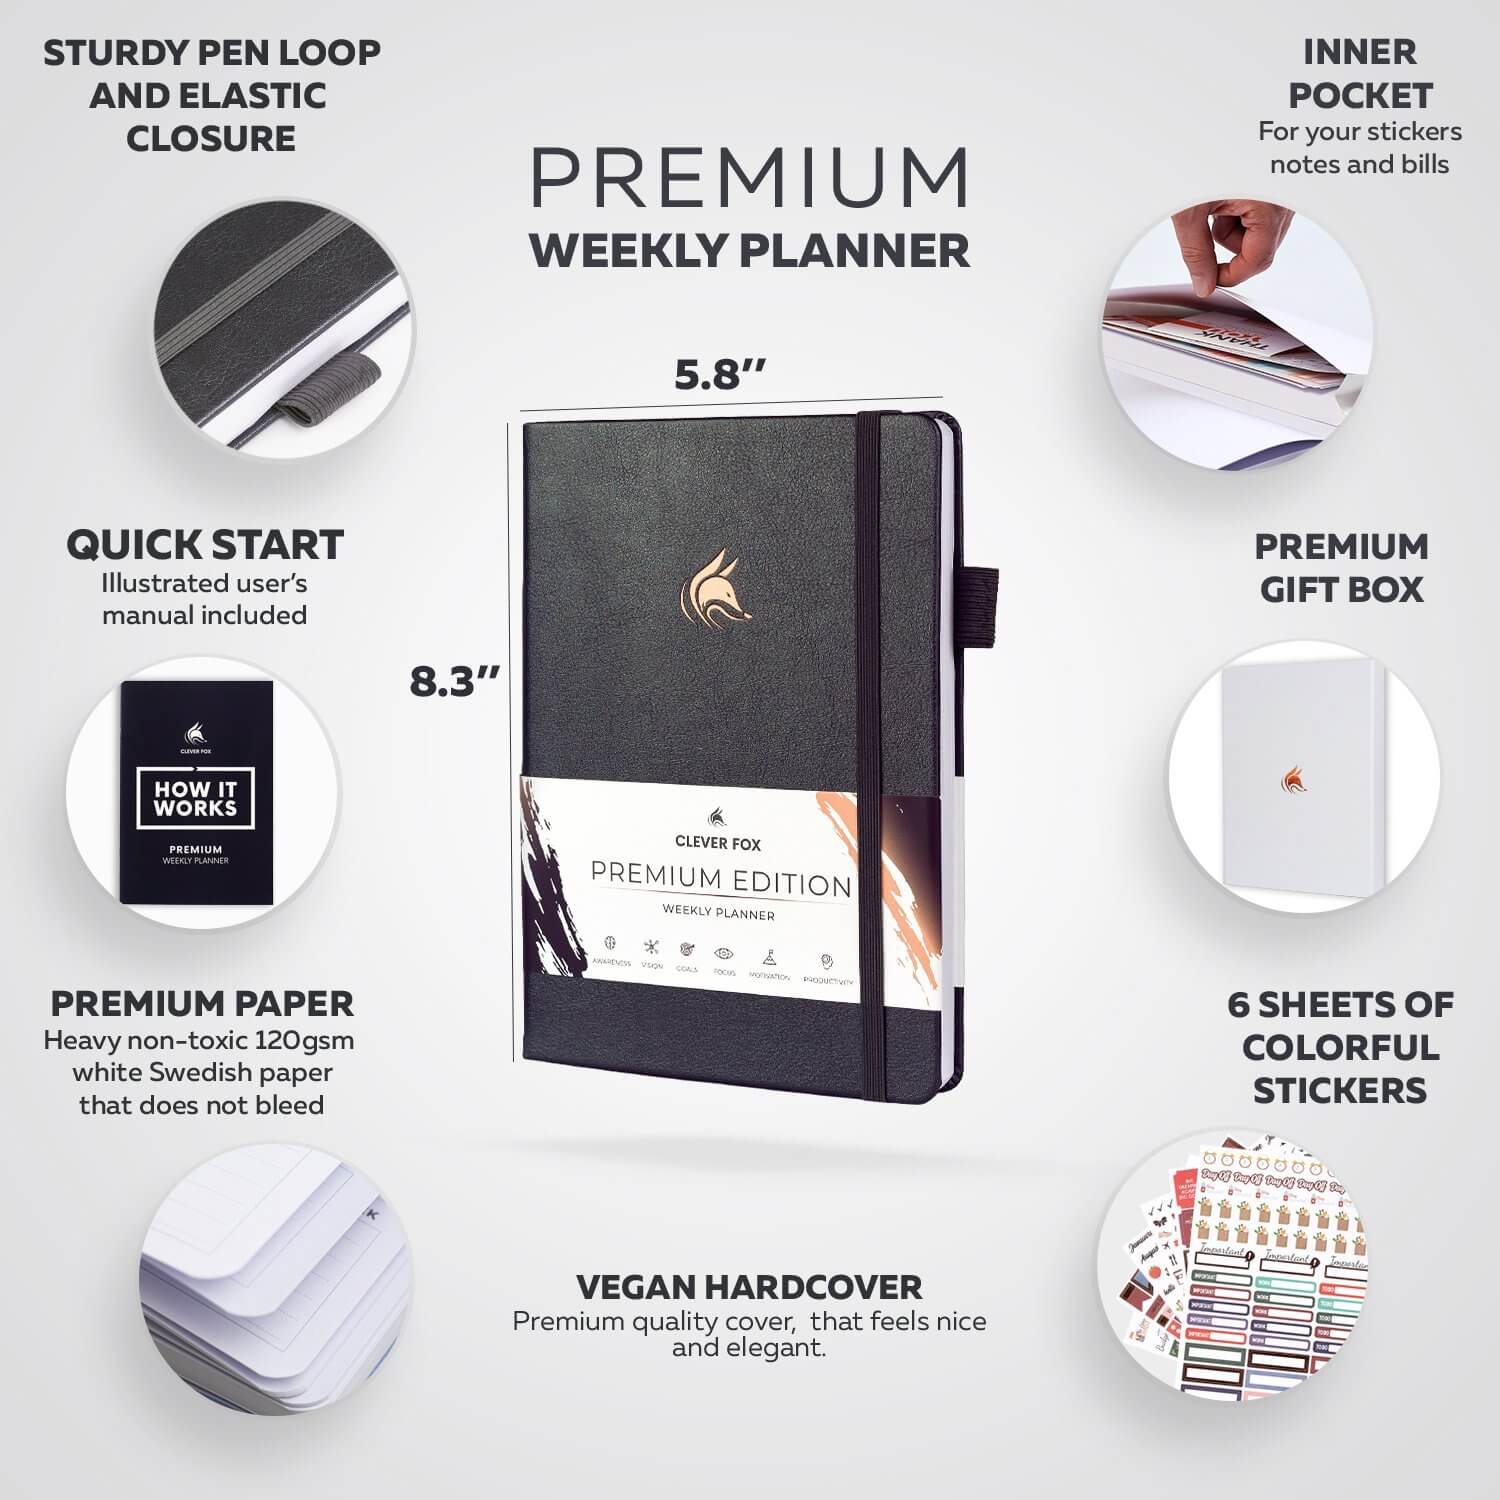 clever fox premium weekly planner 2021